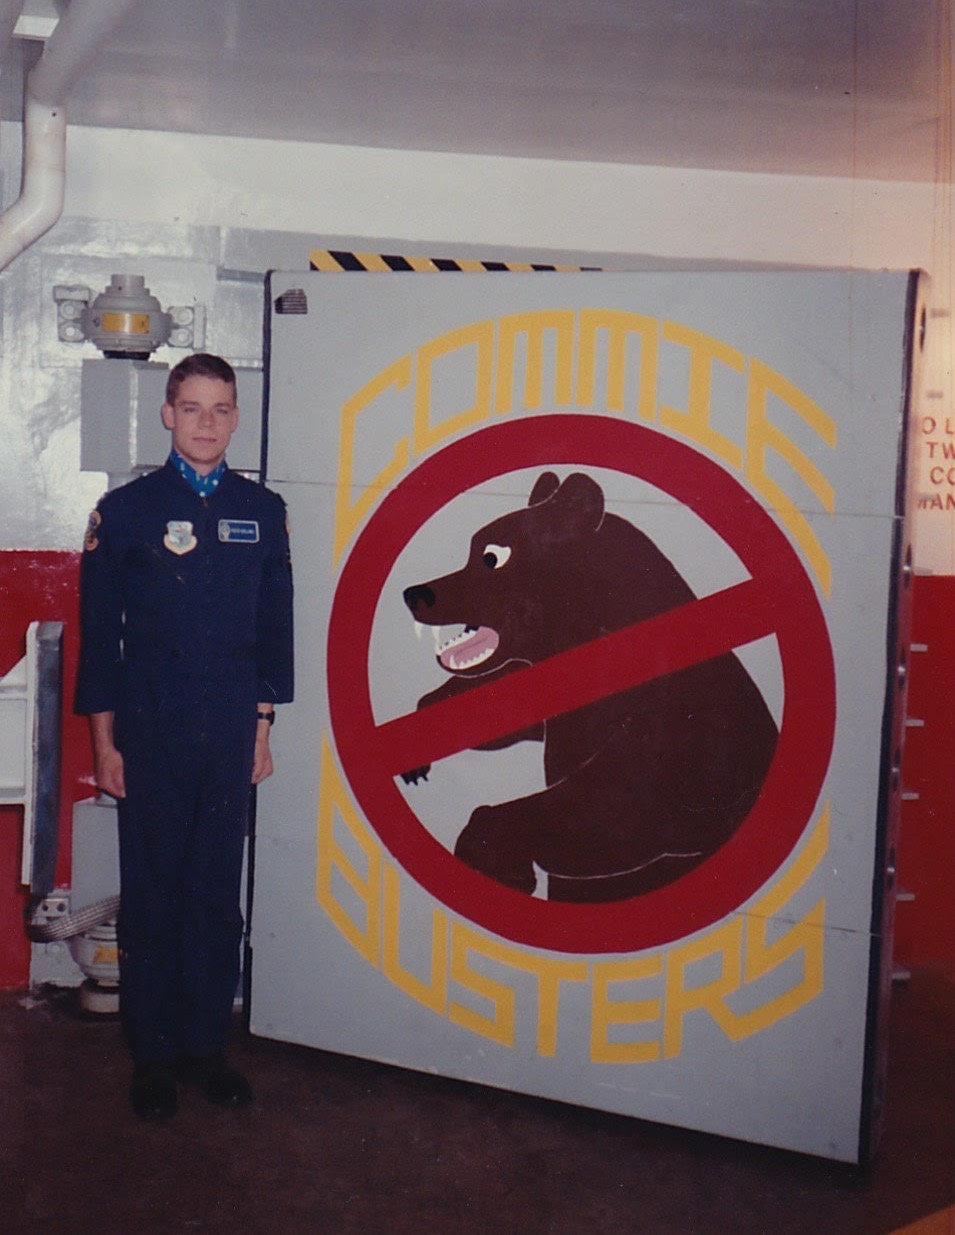 Lt Peter Colins, down in his launch control facility, otherwise know as a missile silo, in South Dakota in 1991. Can you tell from the picture where their missile was aimed?